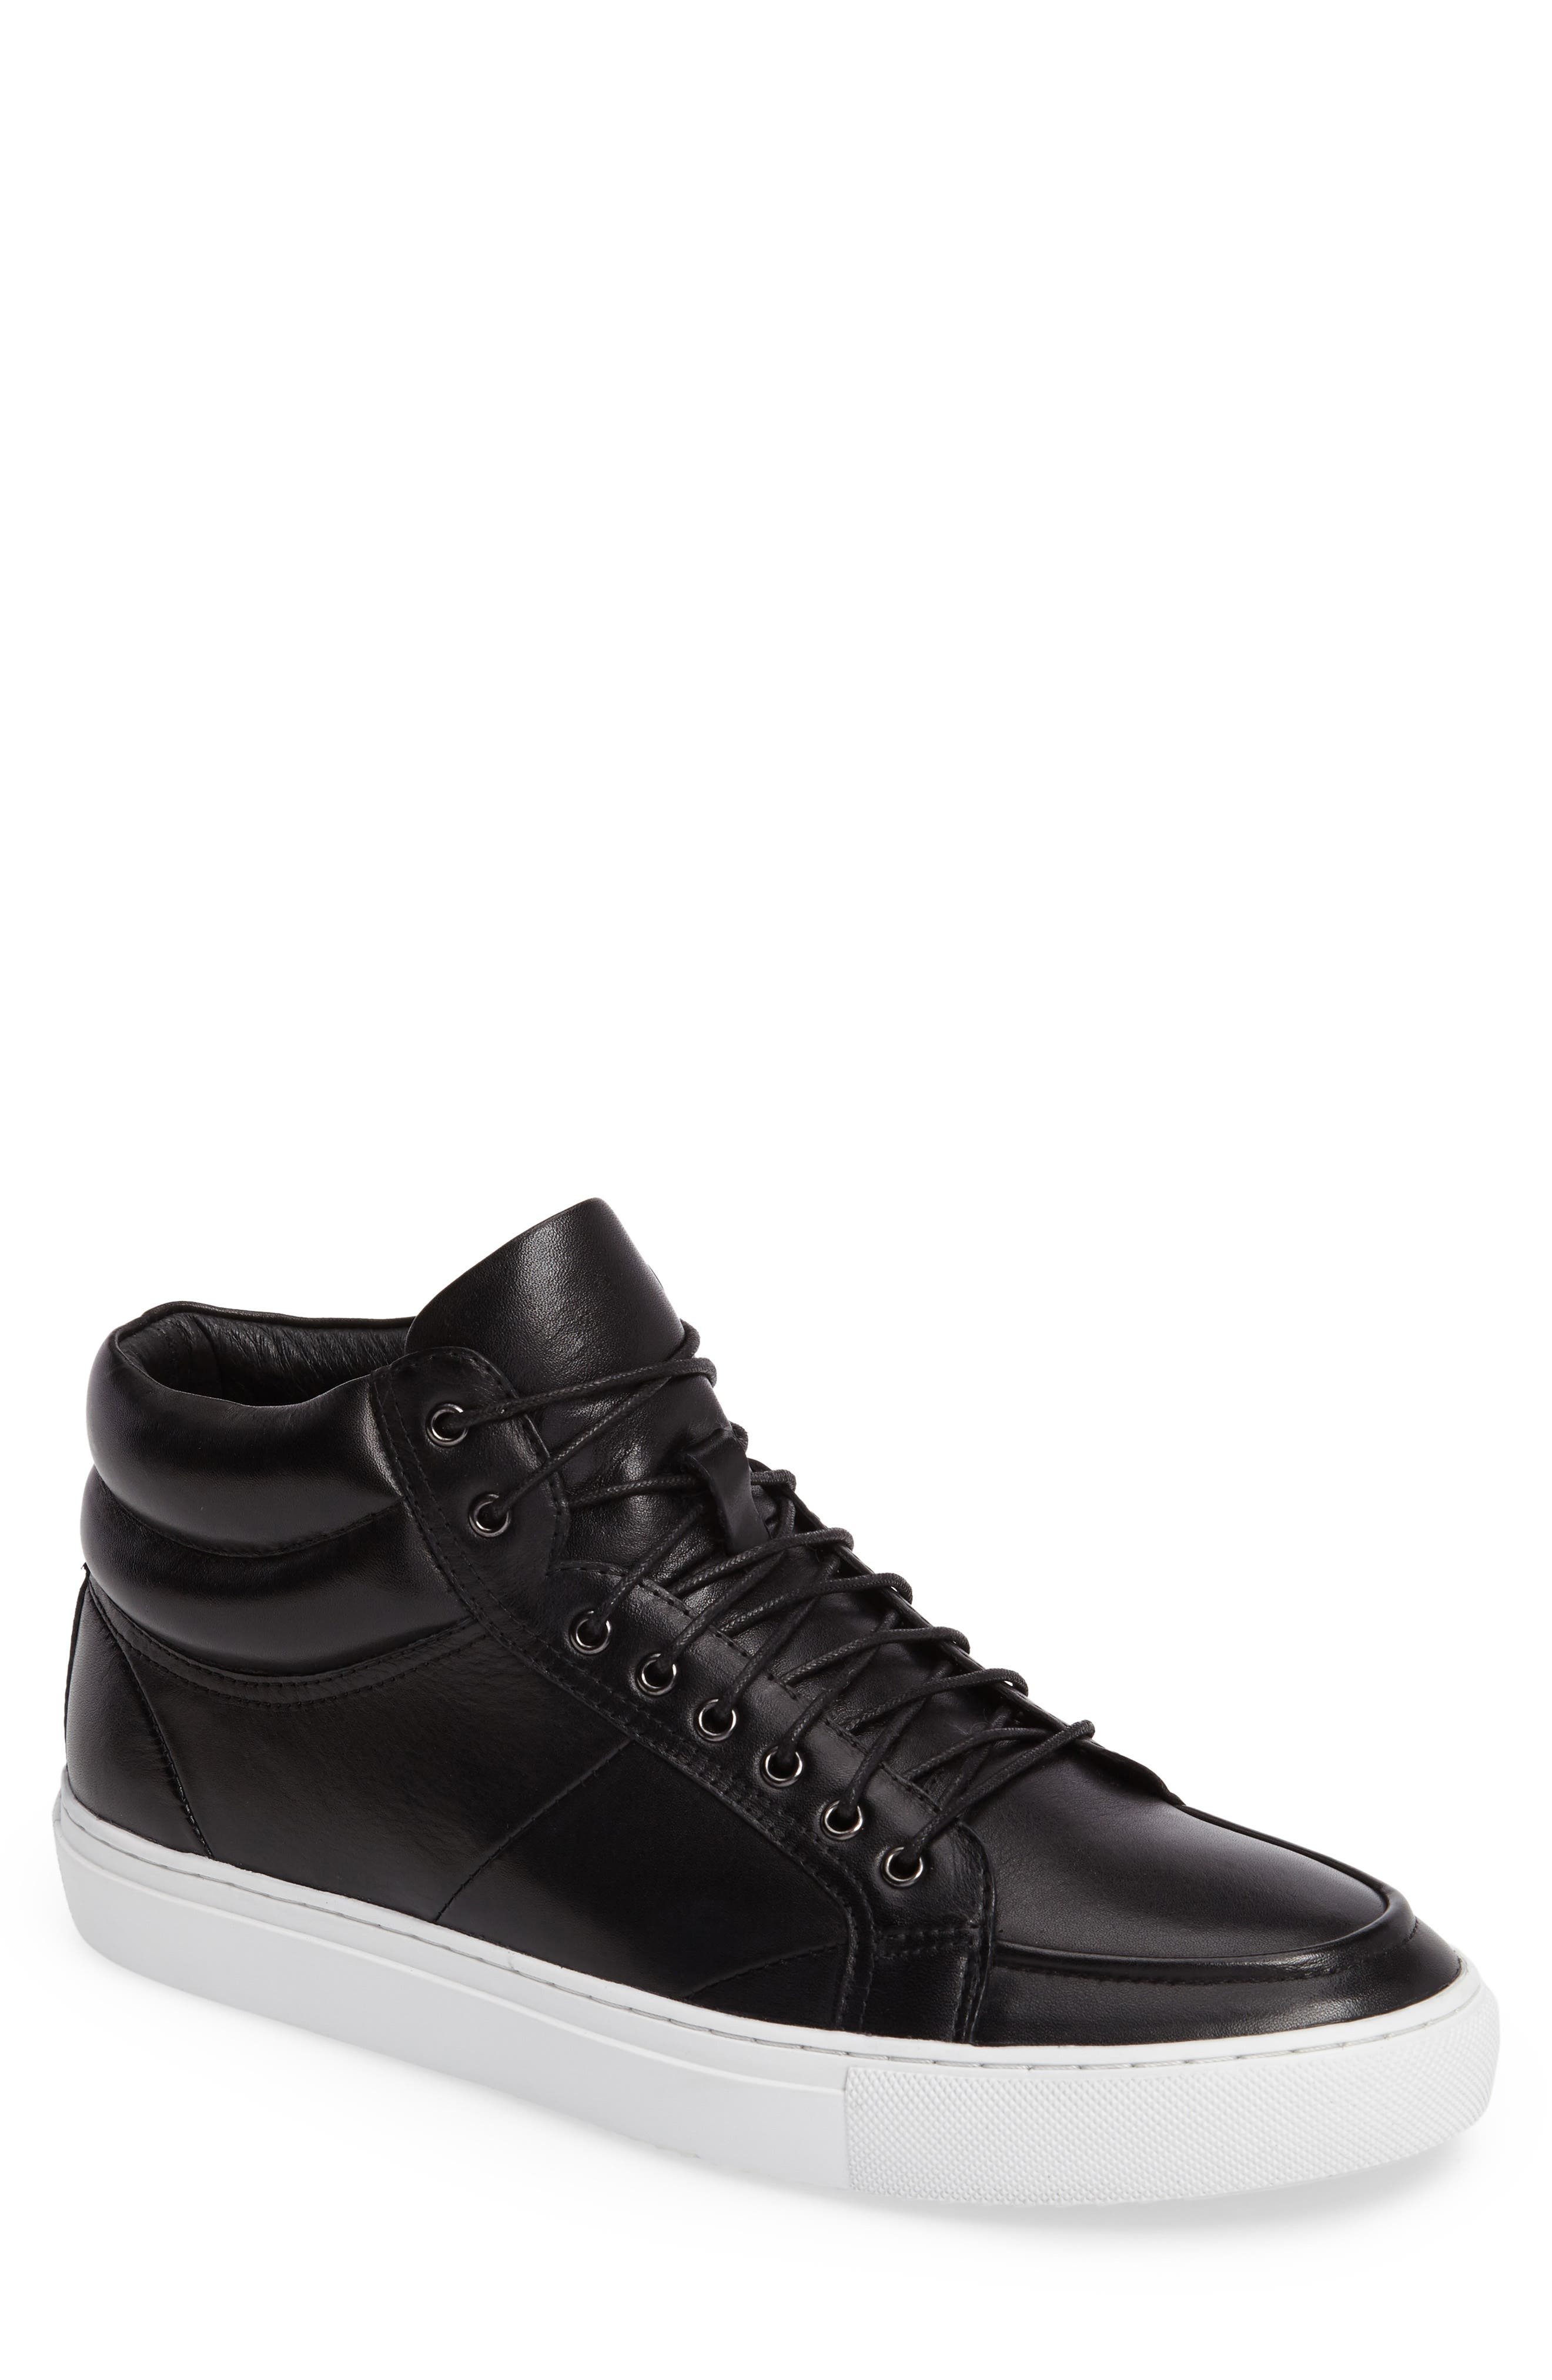 Clef Sneaker,                         Main,                         color, Black Leather